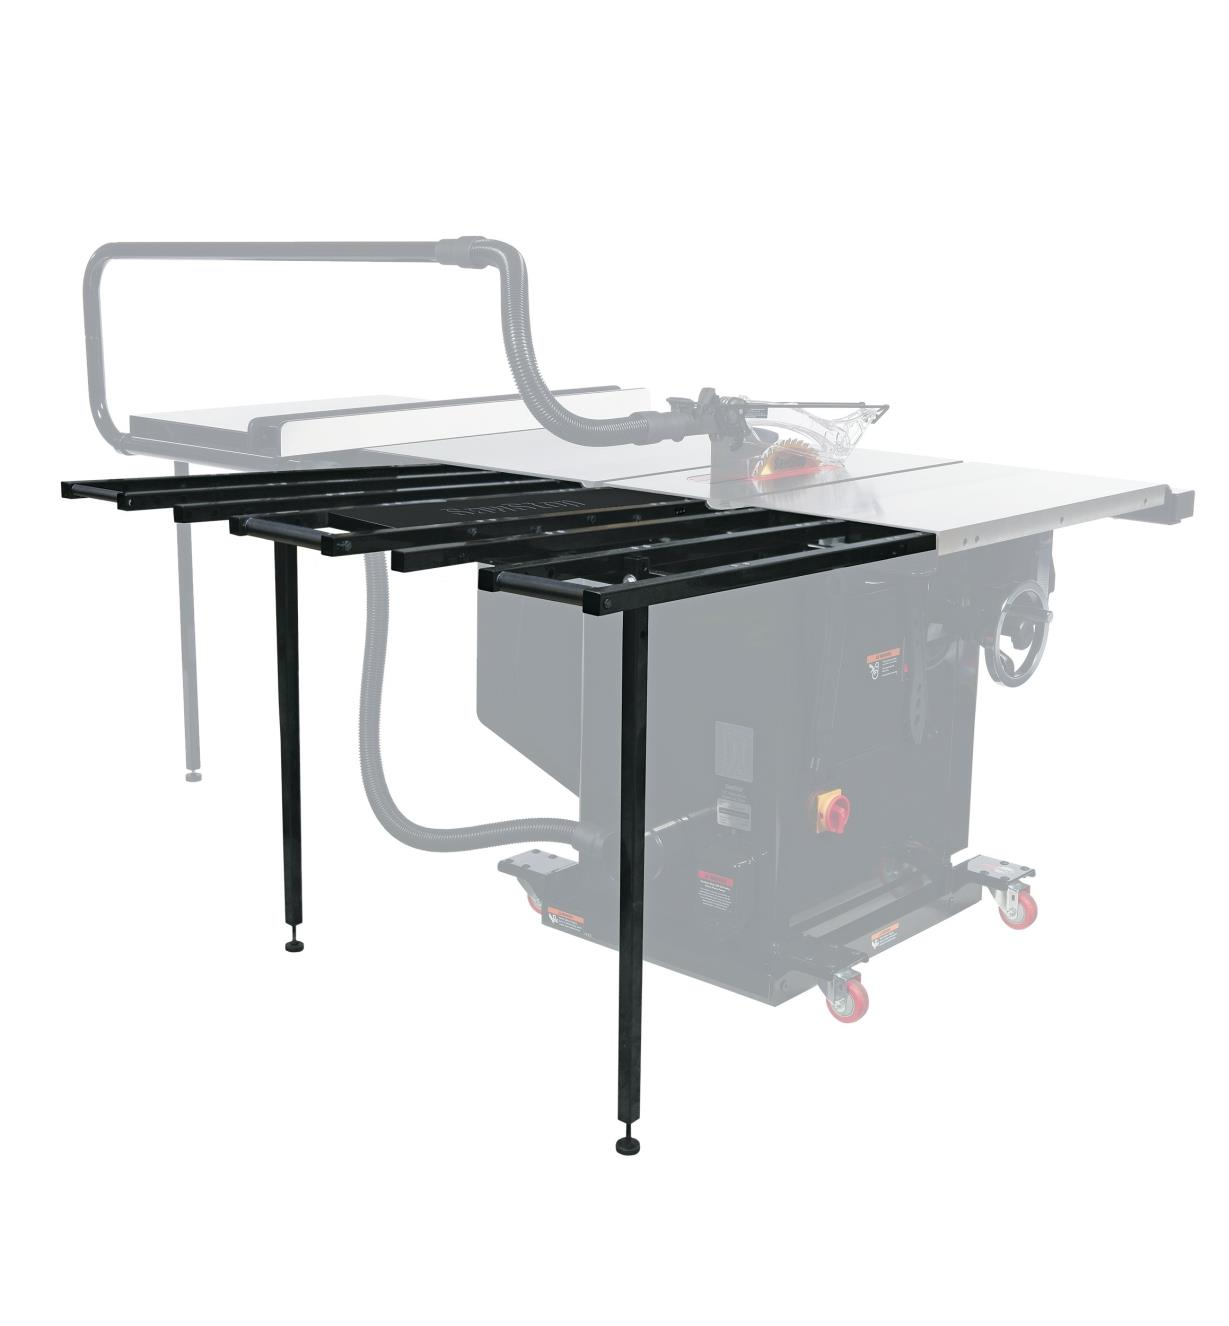 95T0504 - Table de sortie repliable TSA-FOT SawStop